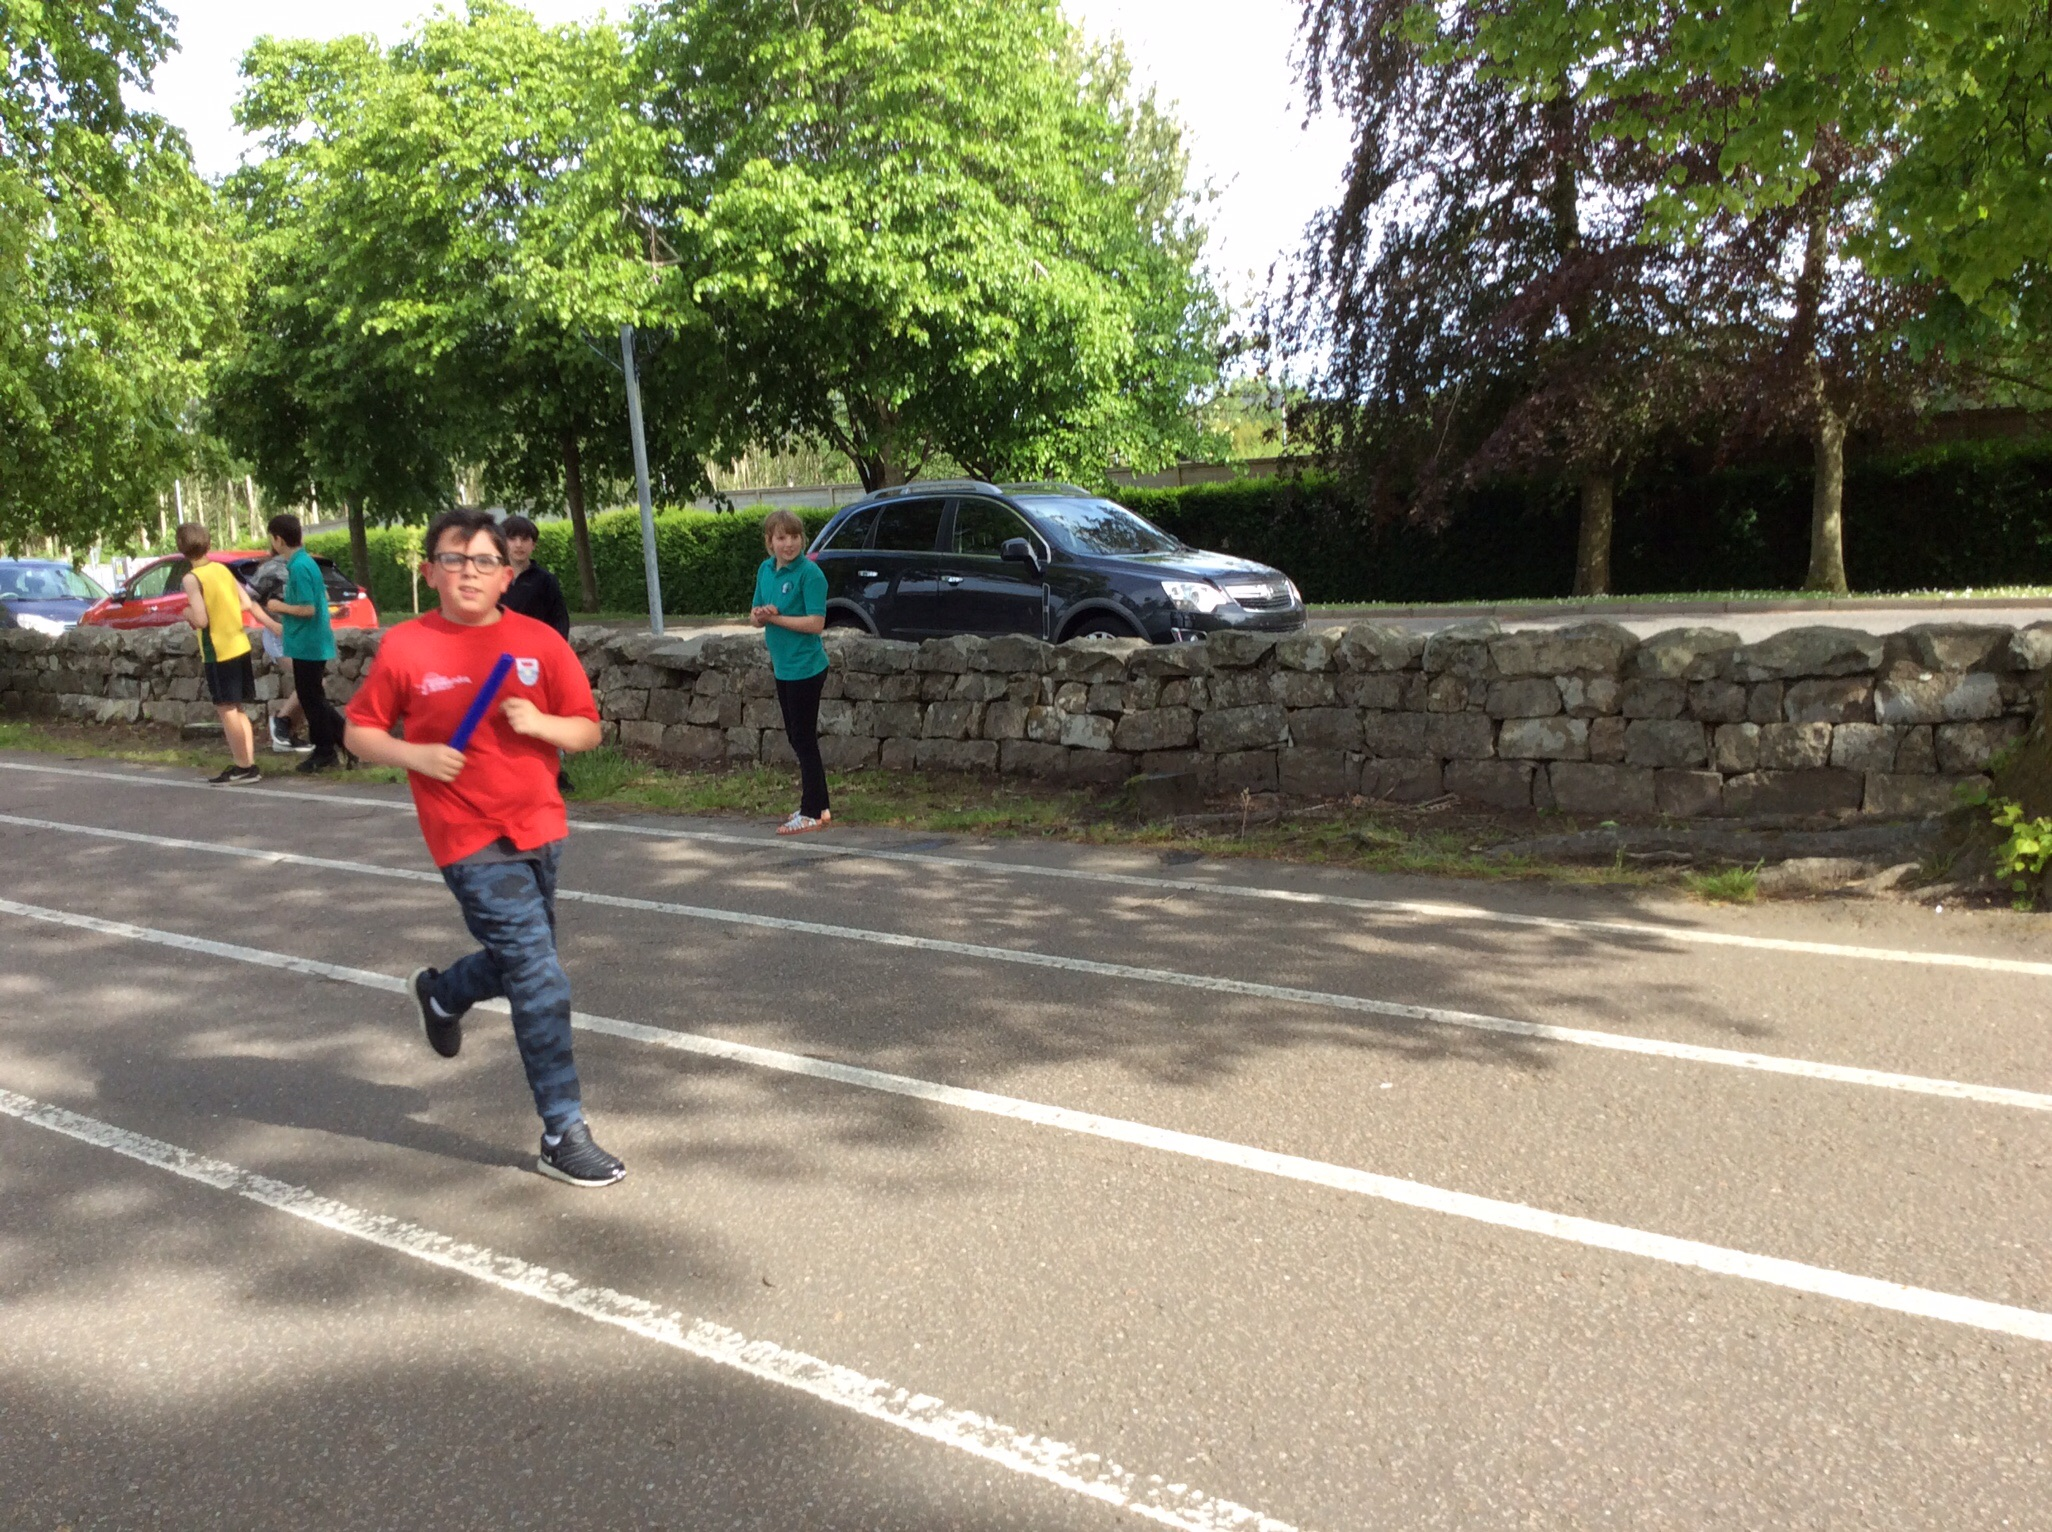 P4 Boy finishing their part of the relay